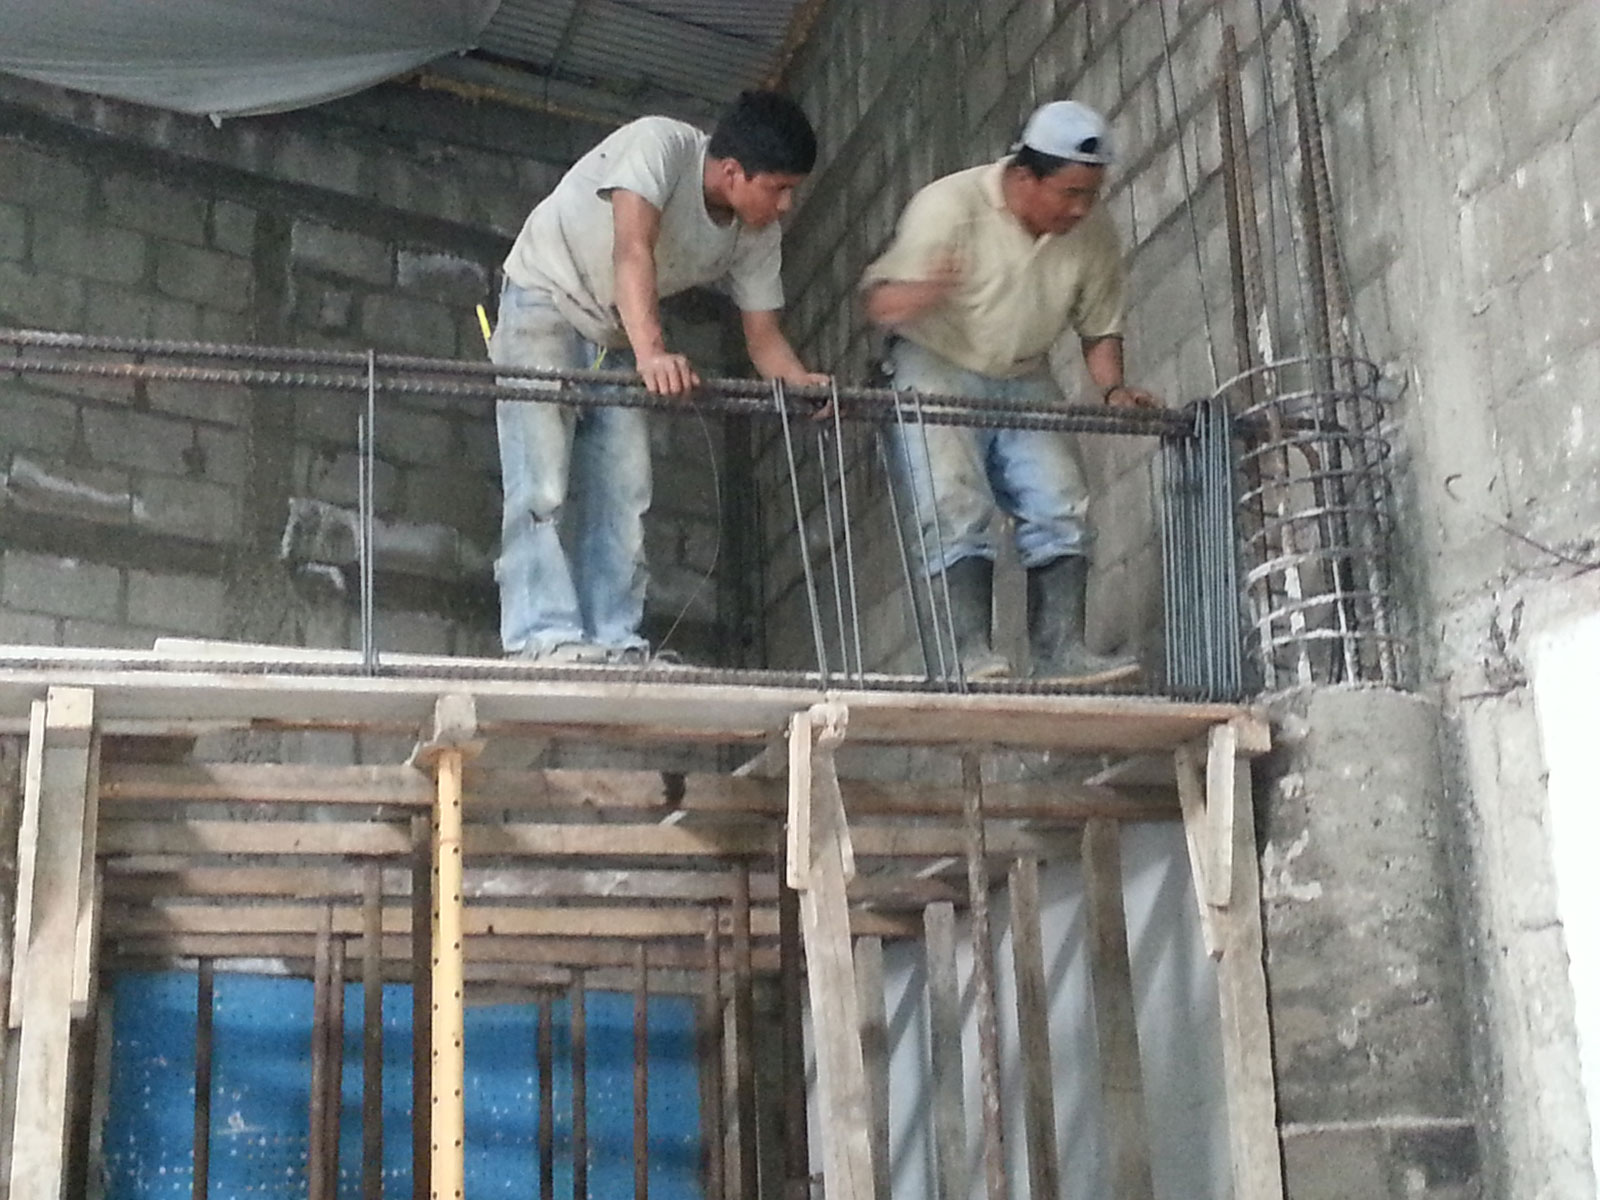 Workers at the Genesaret Church in Guatemala City begin reinforcement of the two story walls to accommodate a second floor.  A combination of rebar, poured concrete and block walls  provides earthquake protection and added security against intrusion.